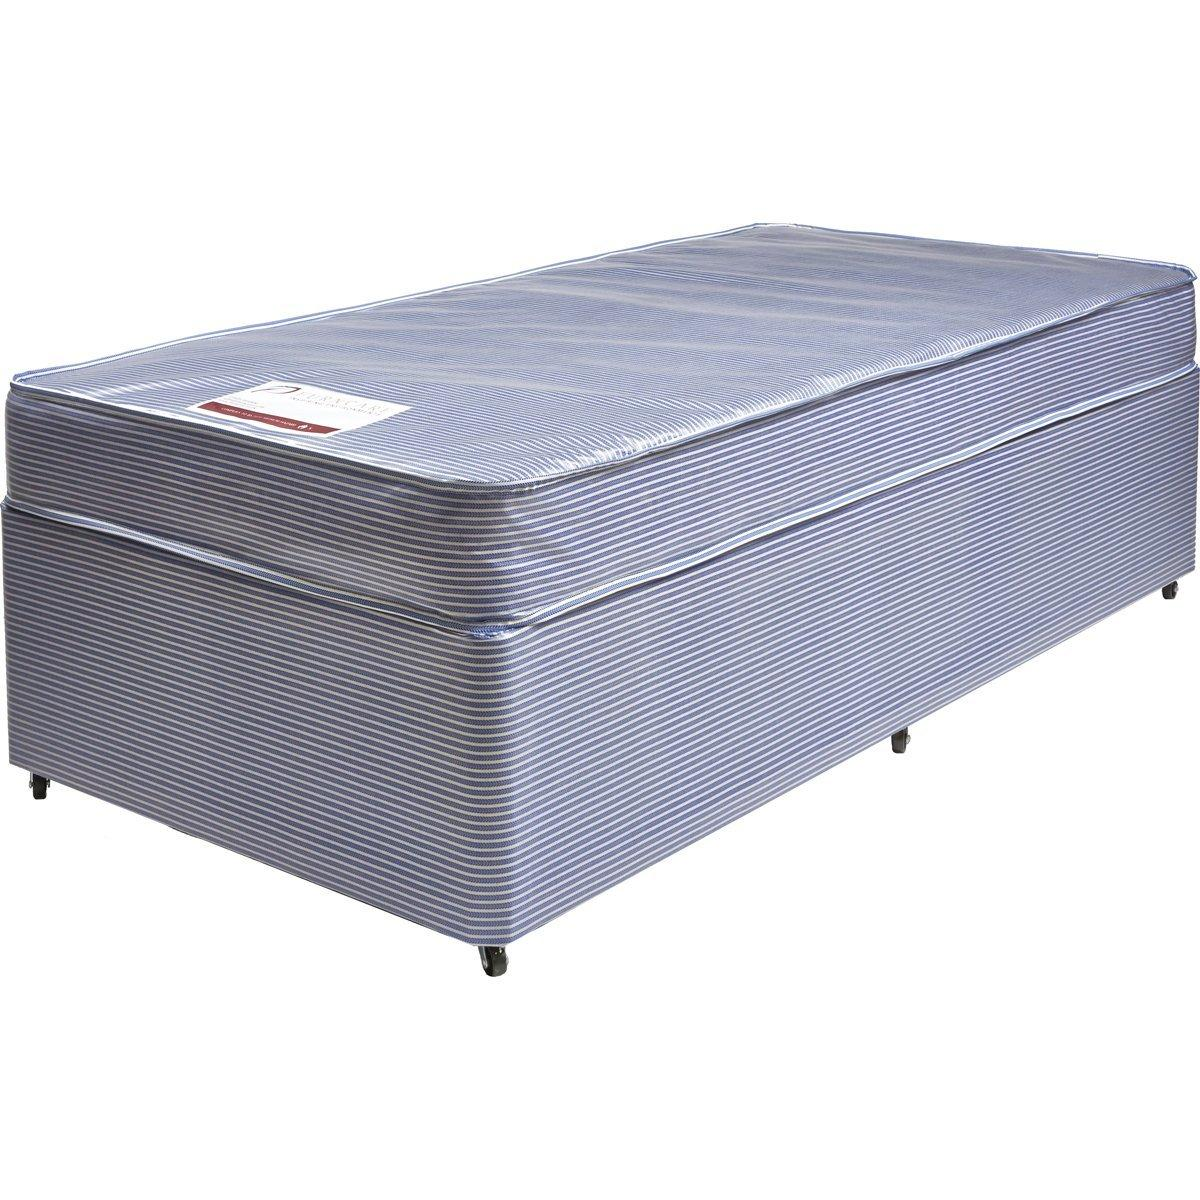 Kalvo Bed Base - Single (Water resistant PVC)-568